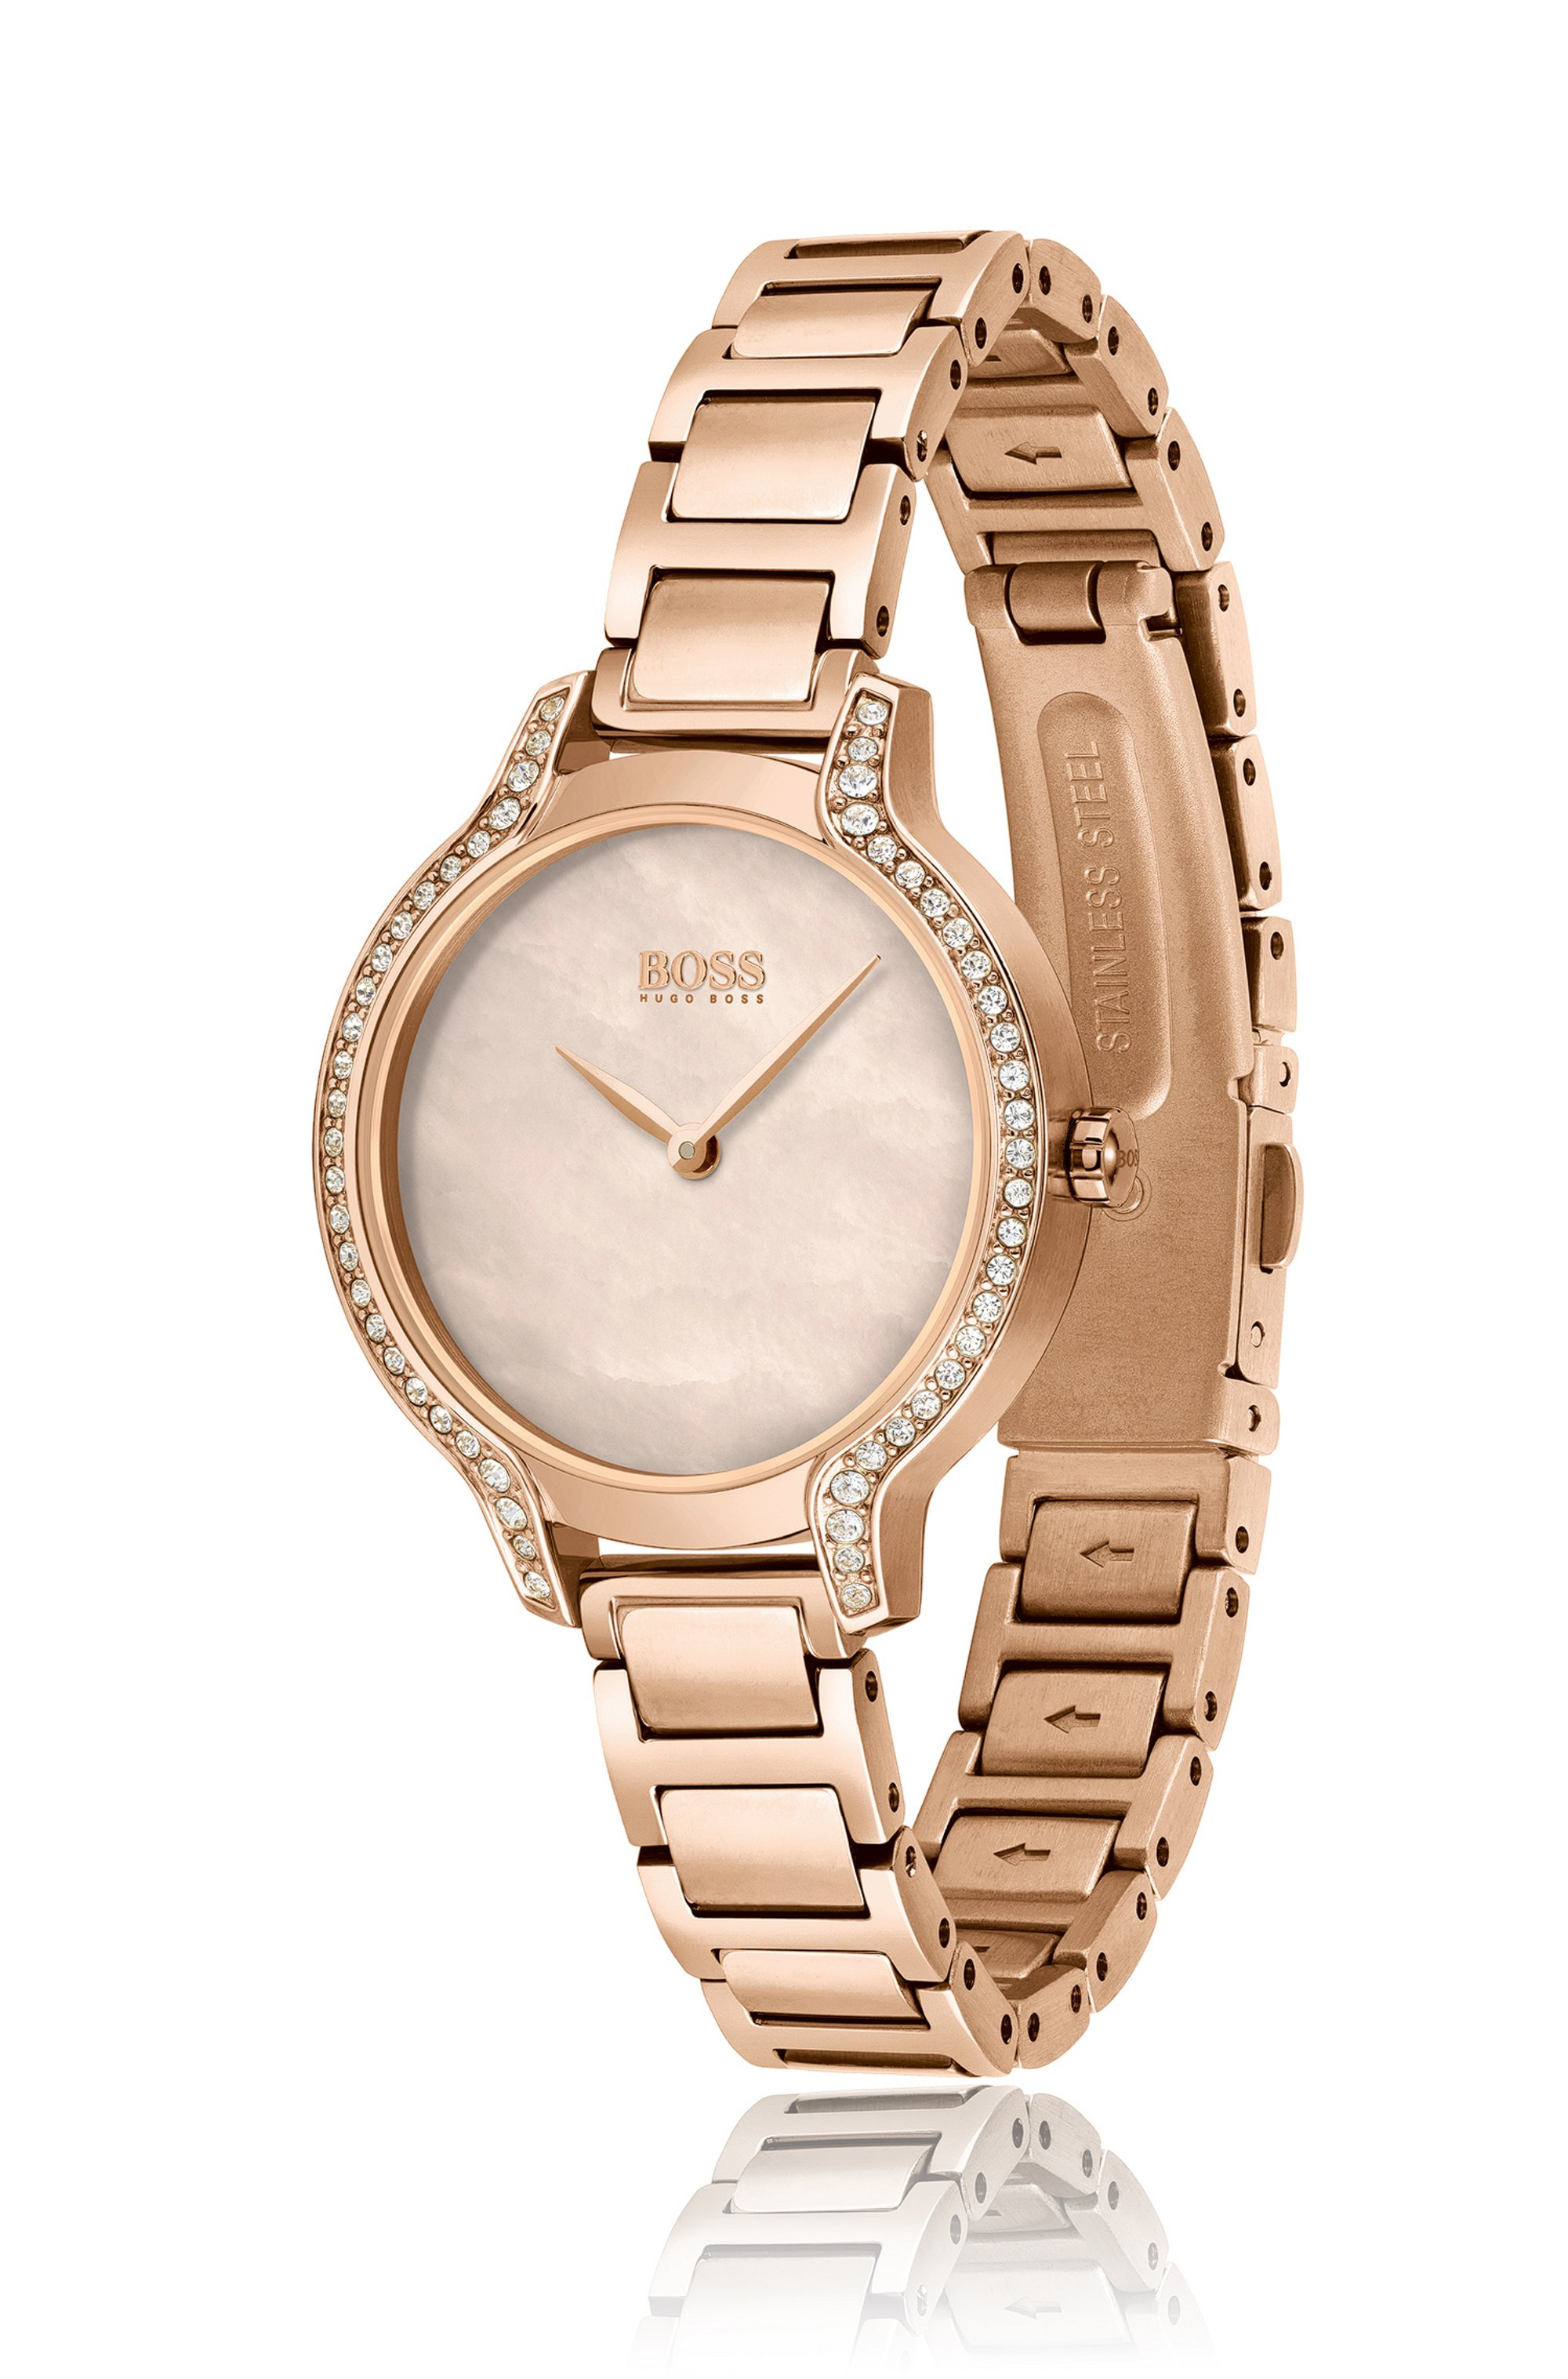 Carnation-gold-effect watch with crystals